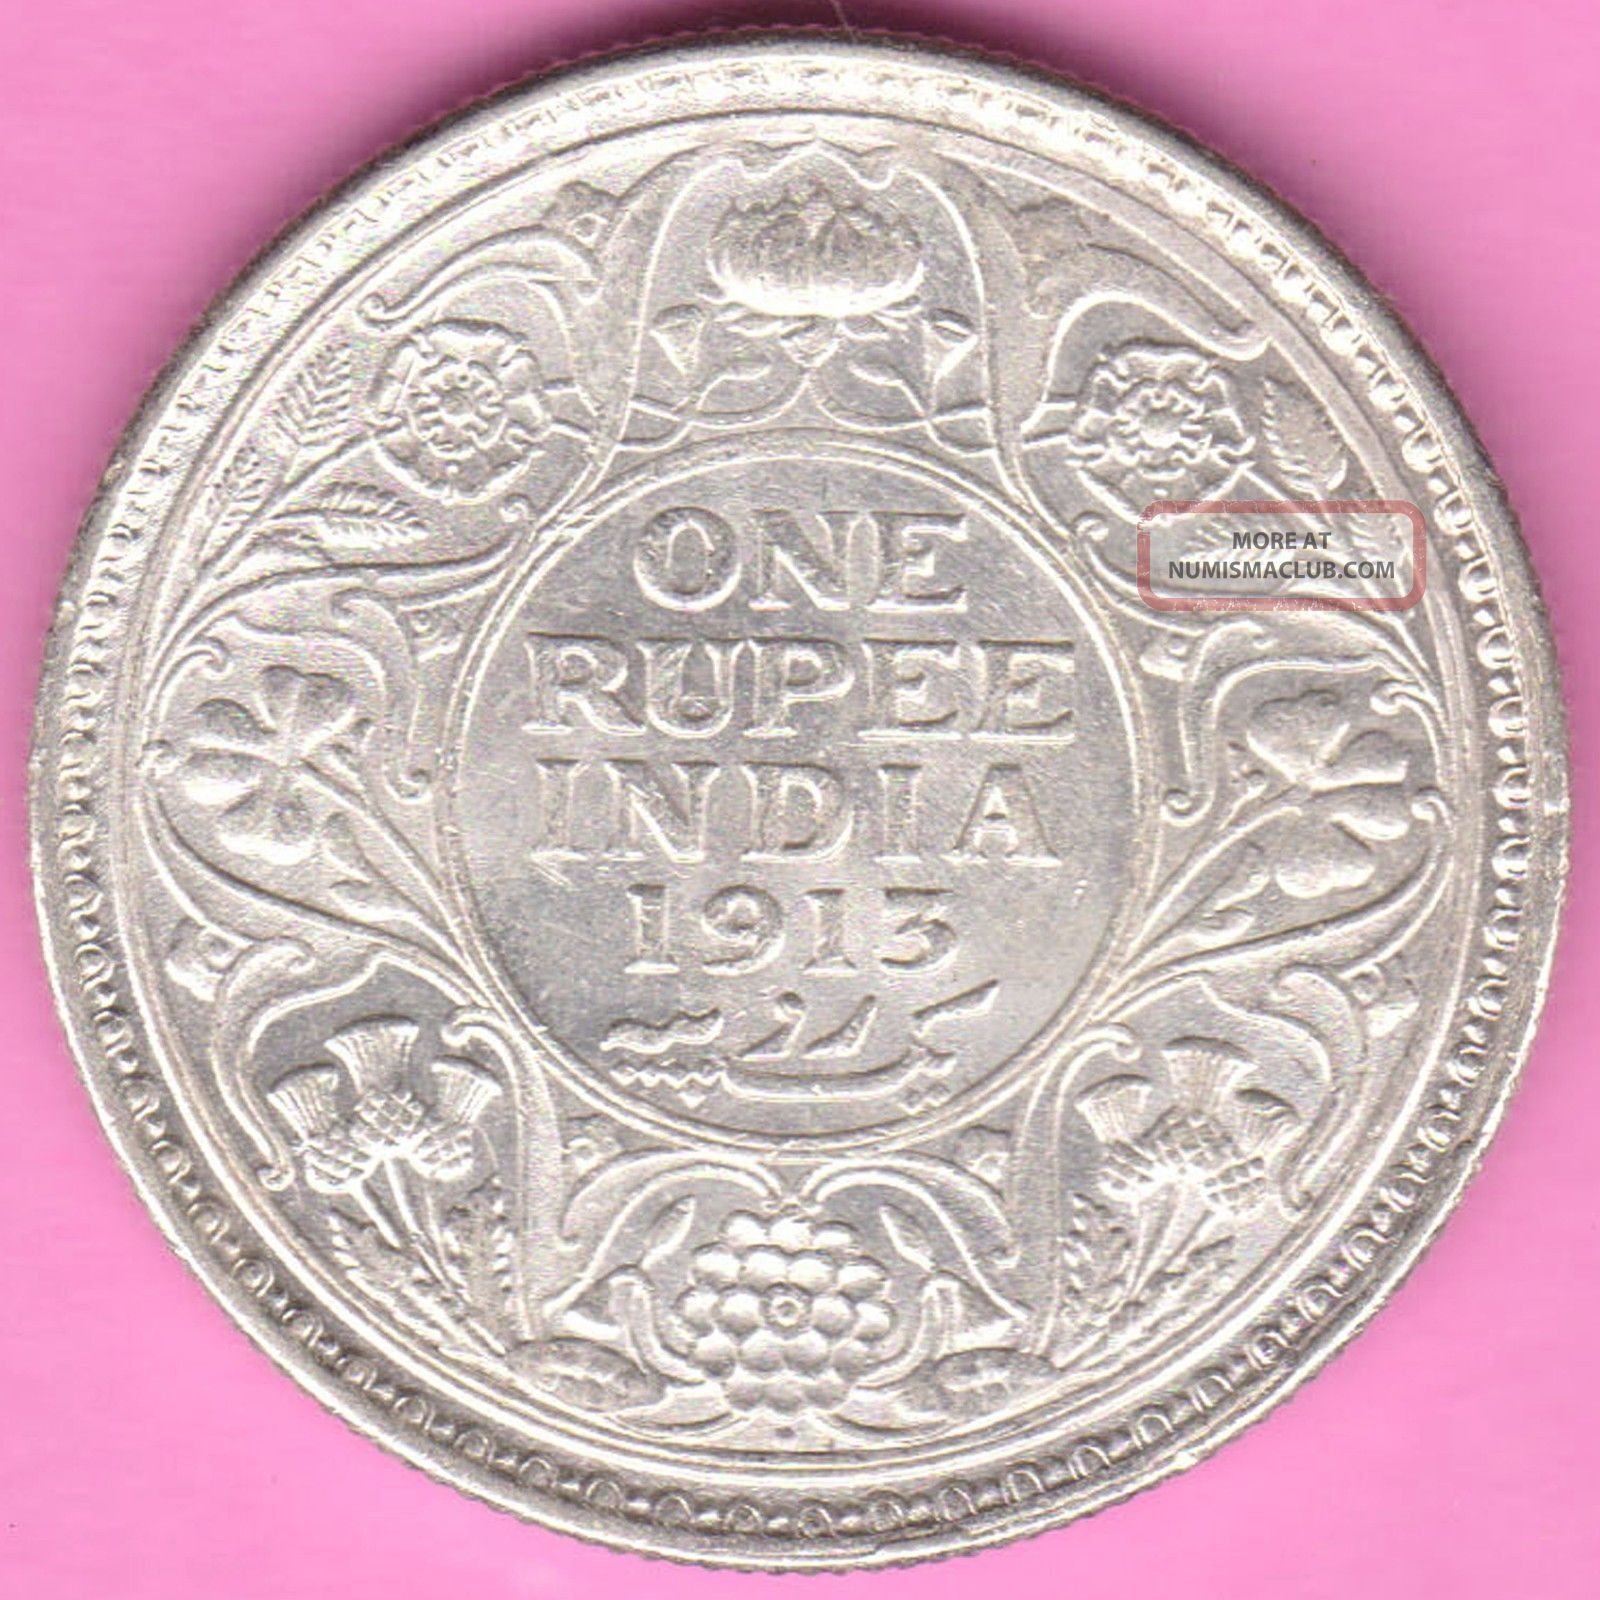 British India - 1913 - One Rupee - King George V - Rarest Silver Coin - 18 British photo